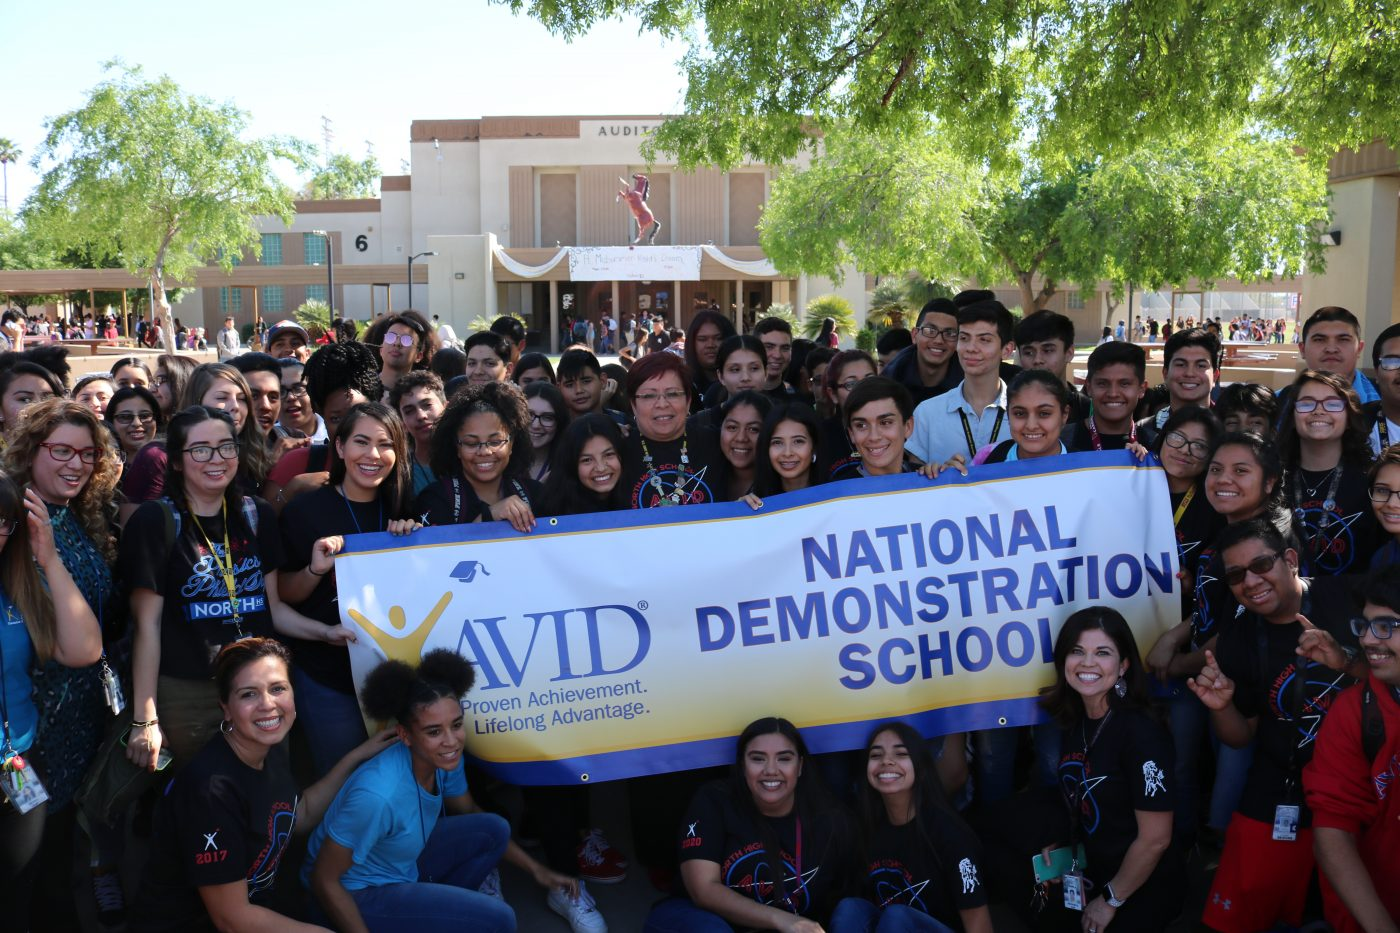 North High School In Phoenix Becomes AVID Demonstration School, 2017